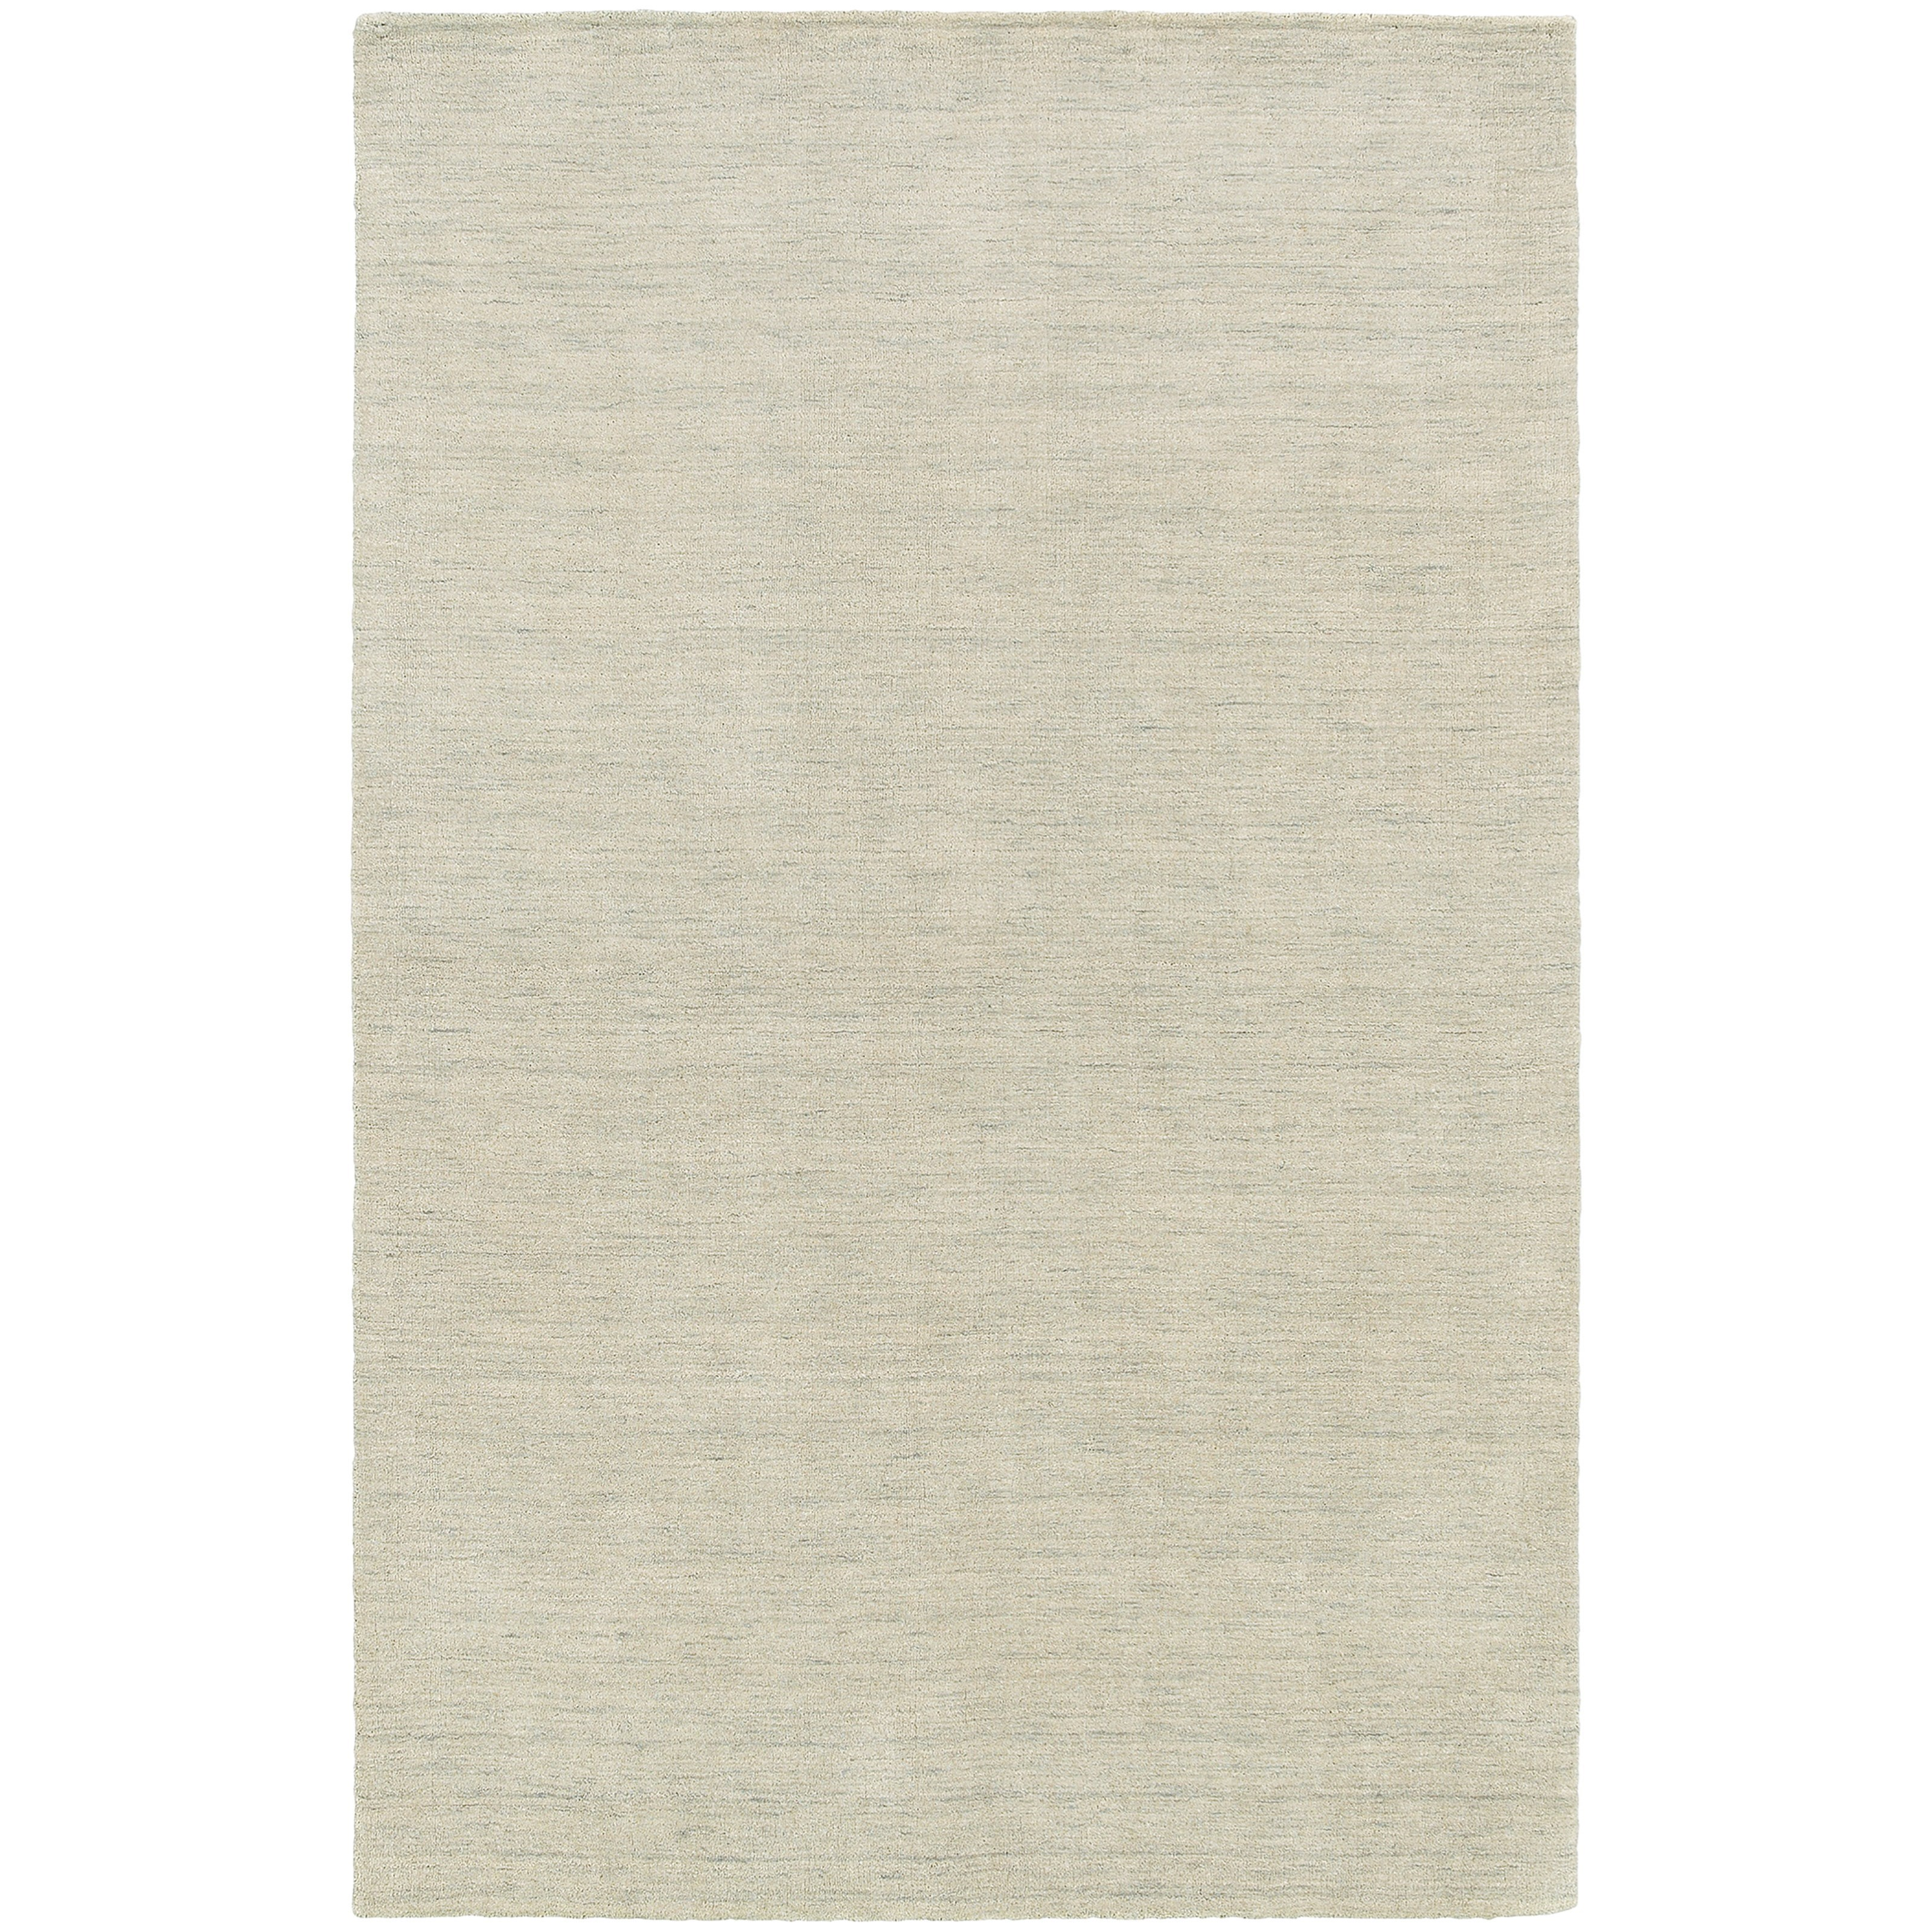 "Aniston 10' 0"" X 13' 0"" Rectangle Area Rug by Oriental Weavers at Furniture Superstore - Rochester, MN"